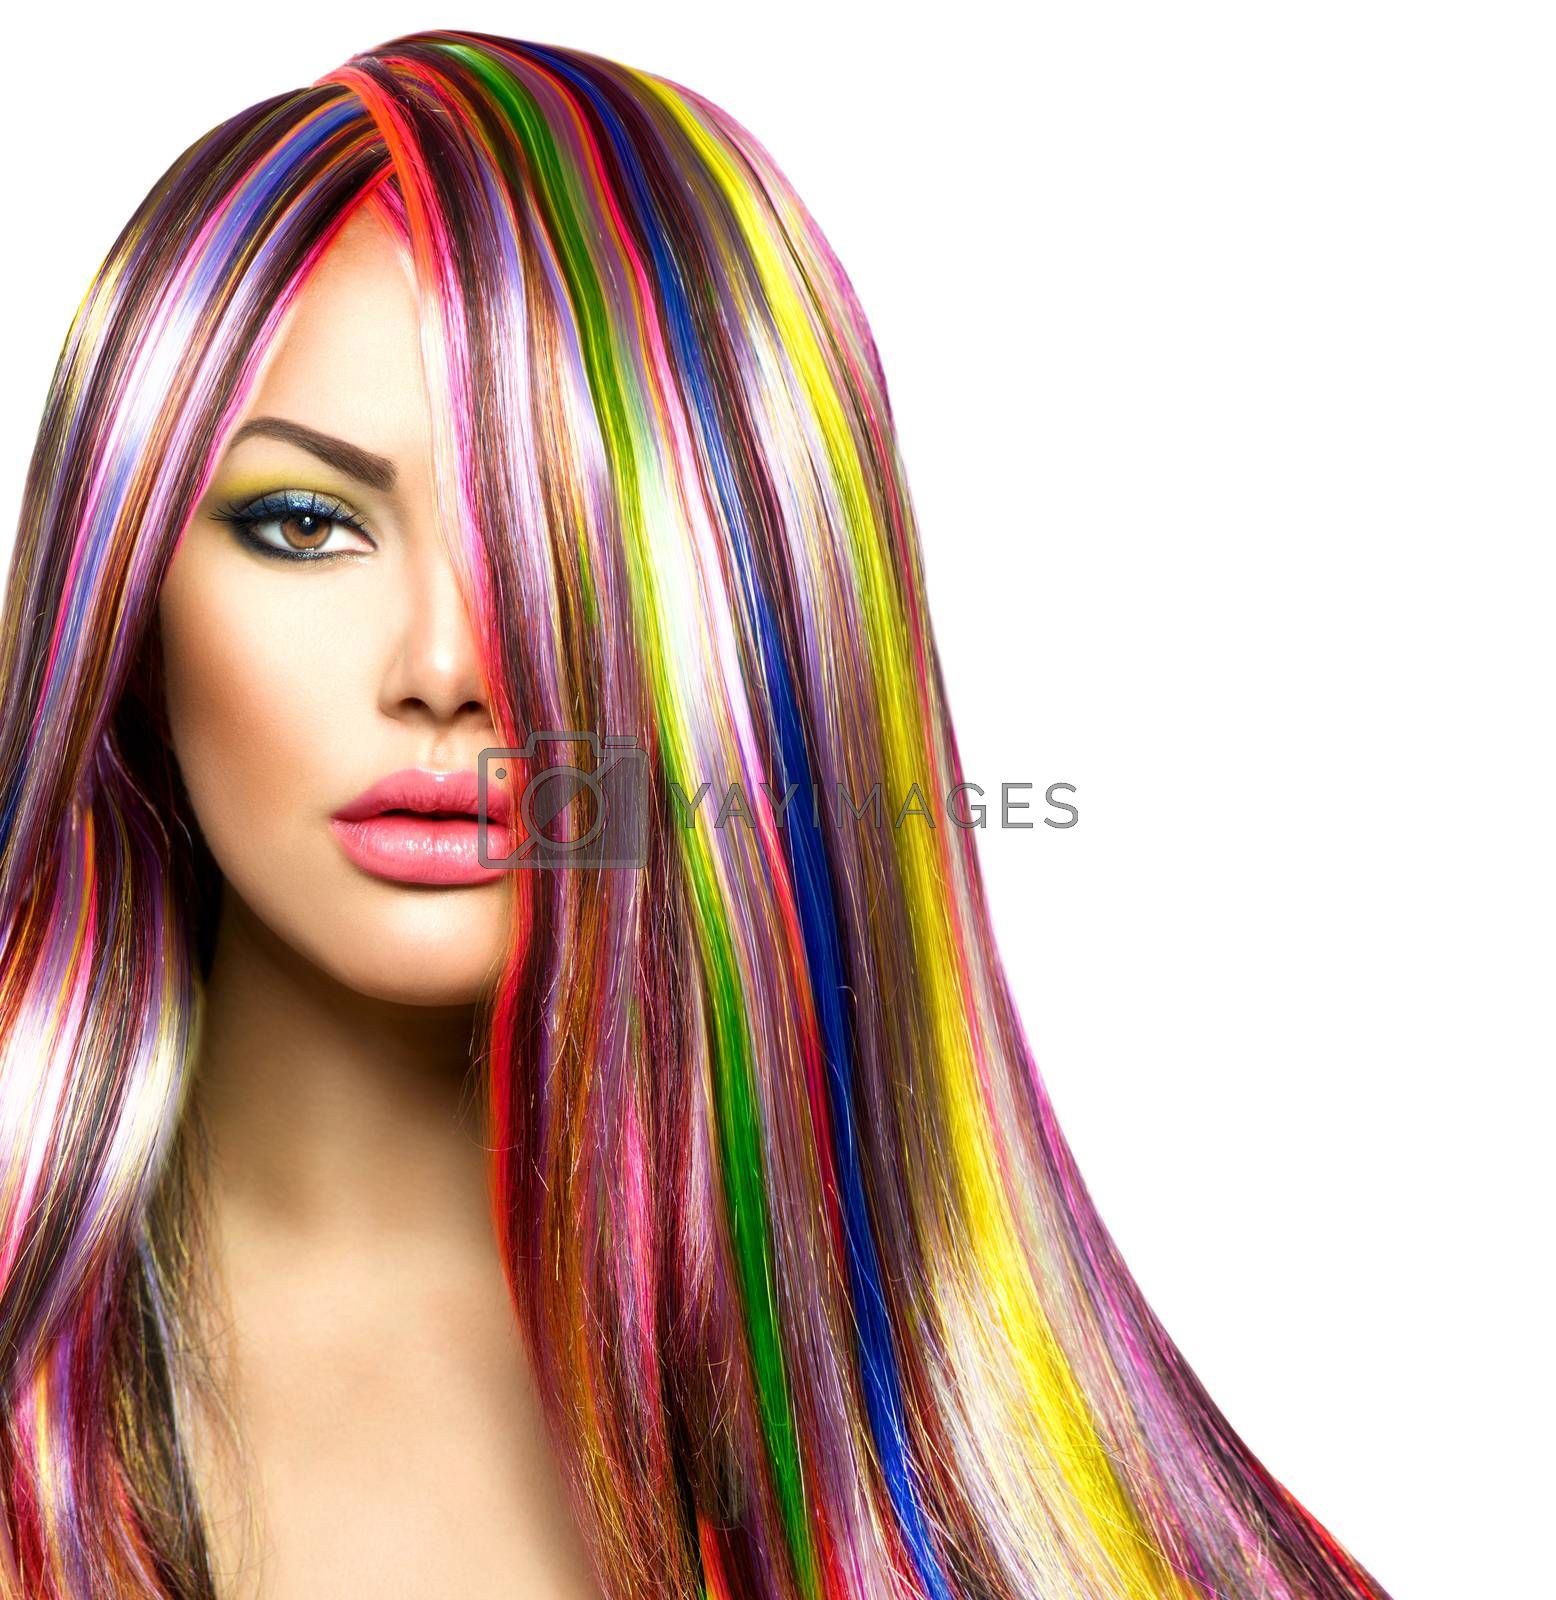 Colorful Hair and Makeup. Beauty Fashion Model Girl by SubbotinaA